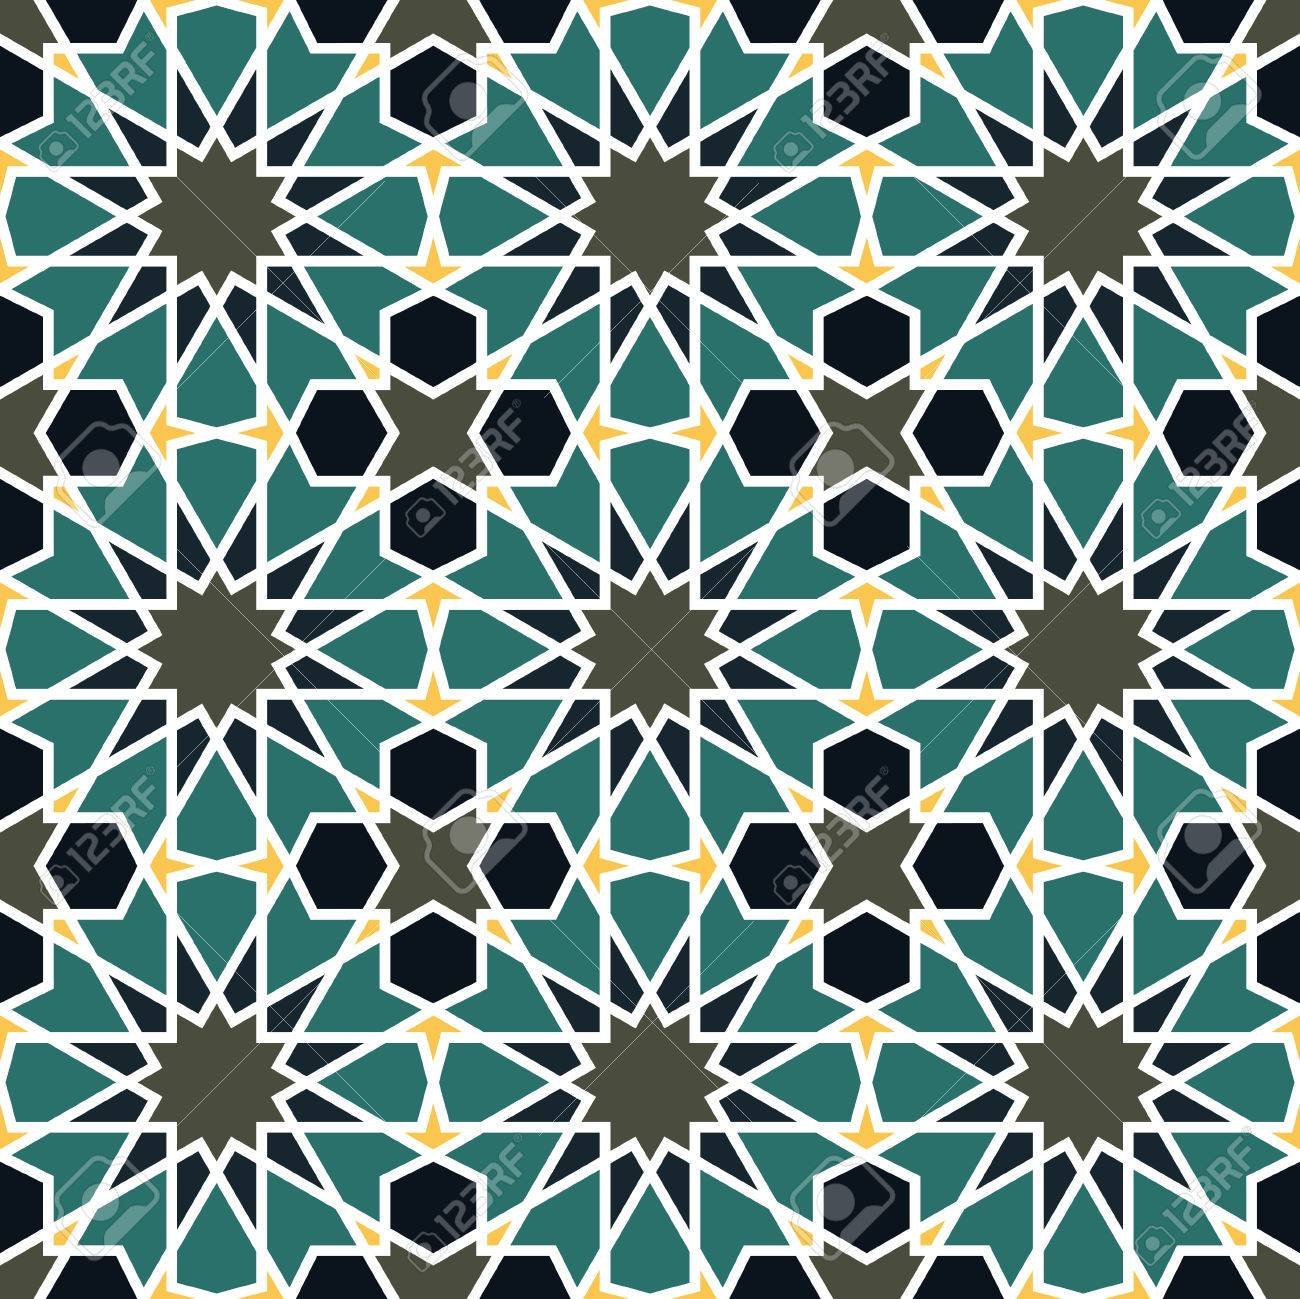 Seamless Pattern In Moroccan Style. Mosaic Tile. Islamic Traditional ...